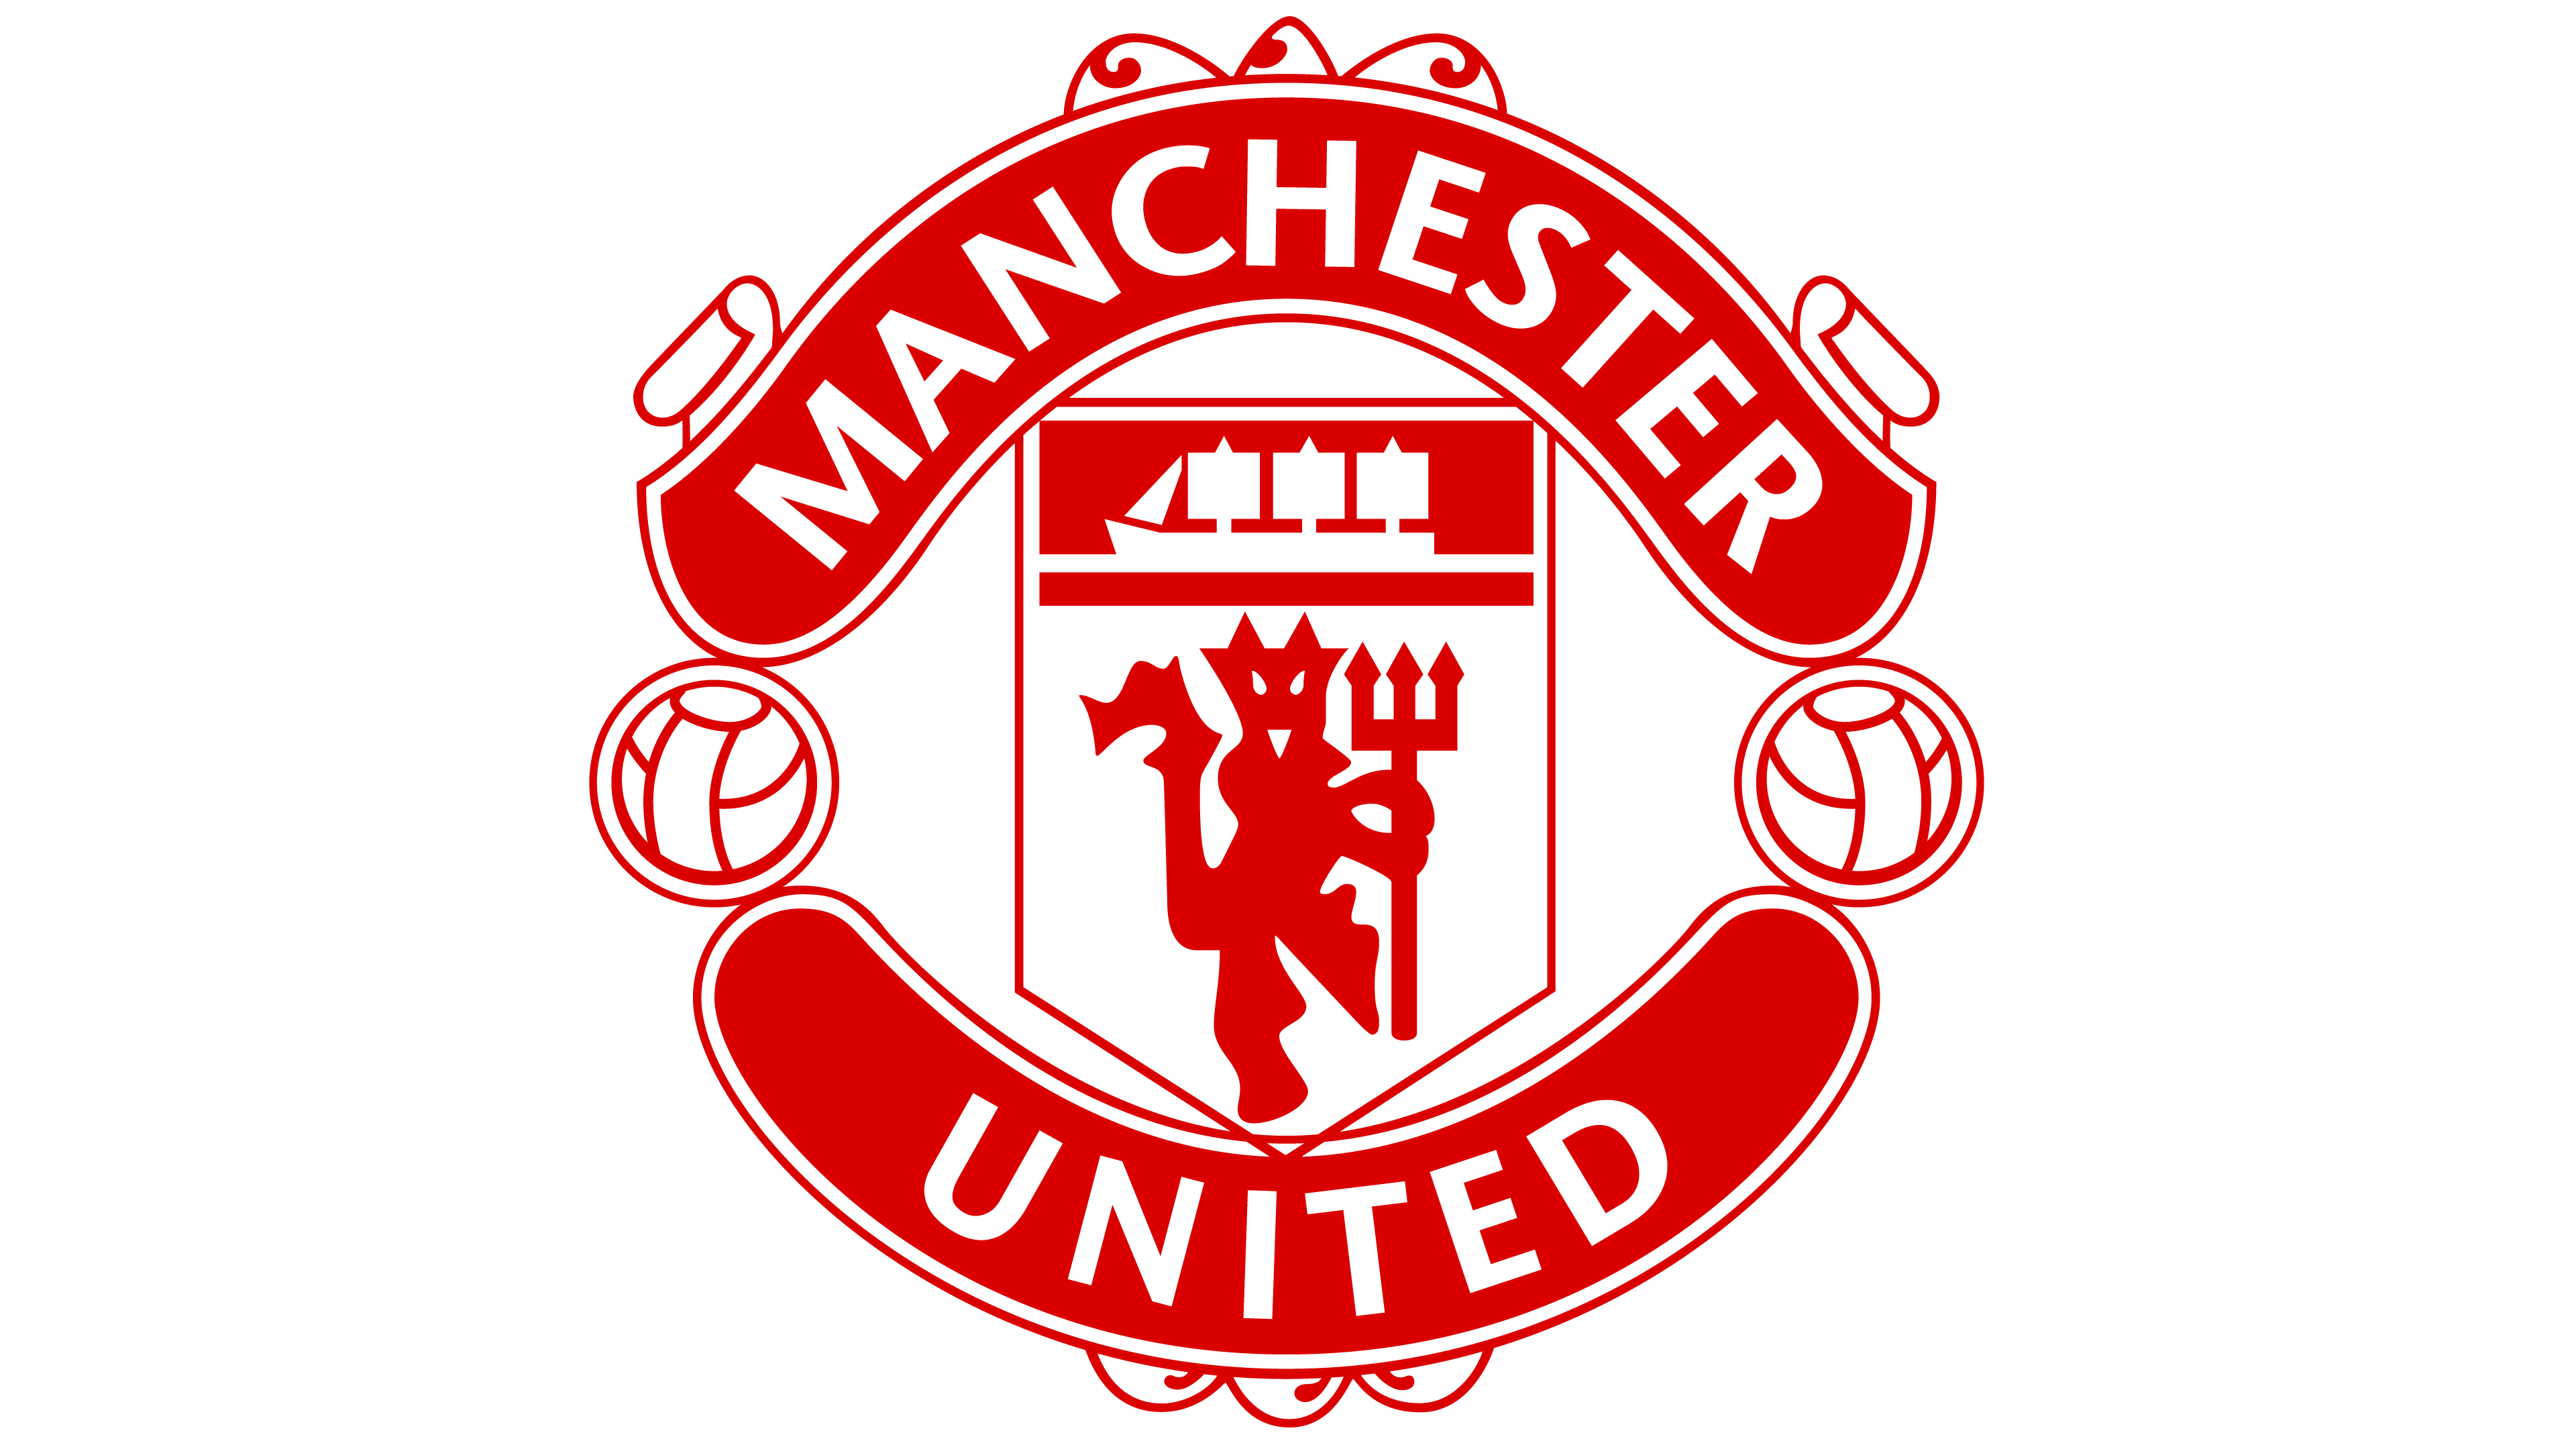 Manchester United Logo - Manchester United logo - Interesting History Team Name and emblem